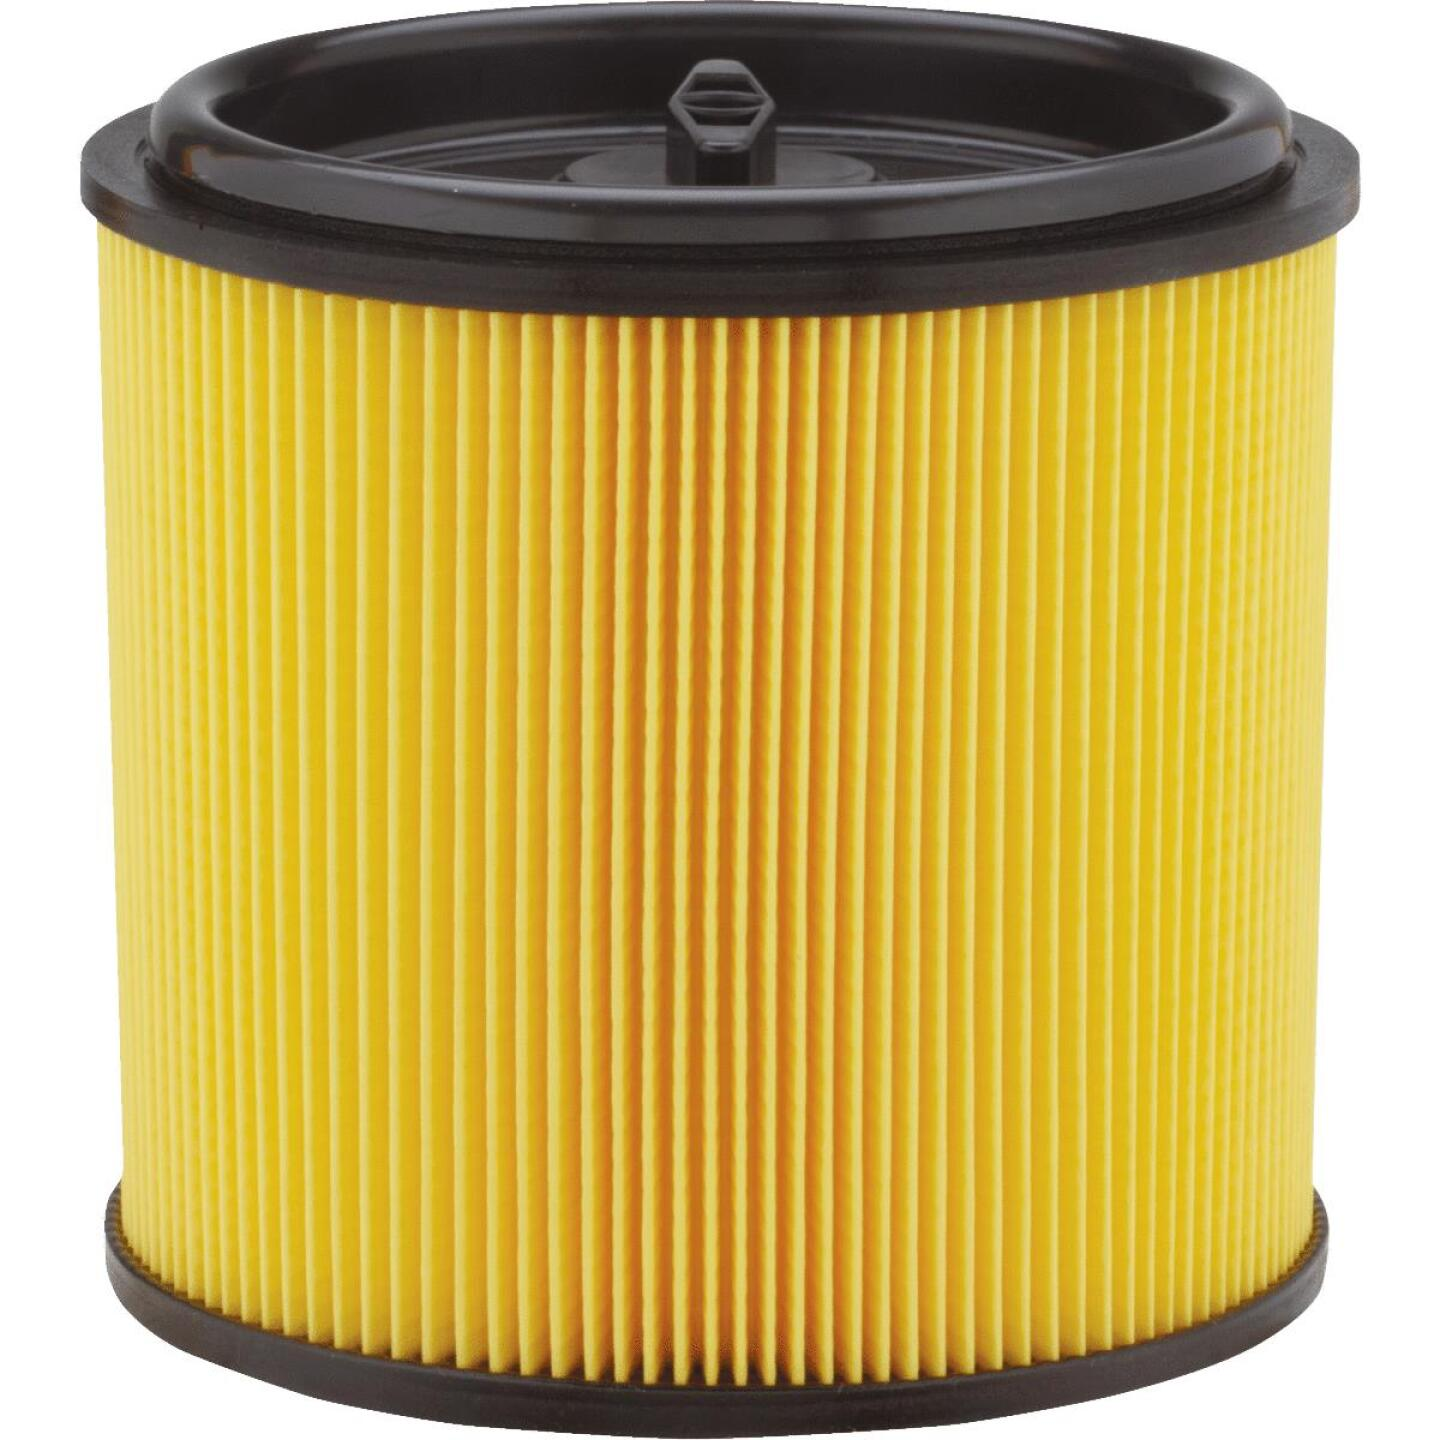 Channellock Cartridge Standard 5 to 25 Gal. Vacuum Filter Image 1